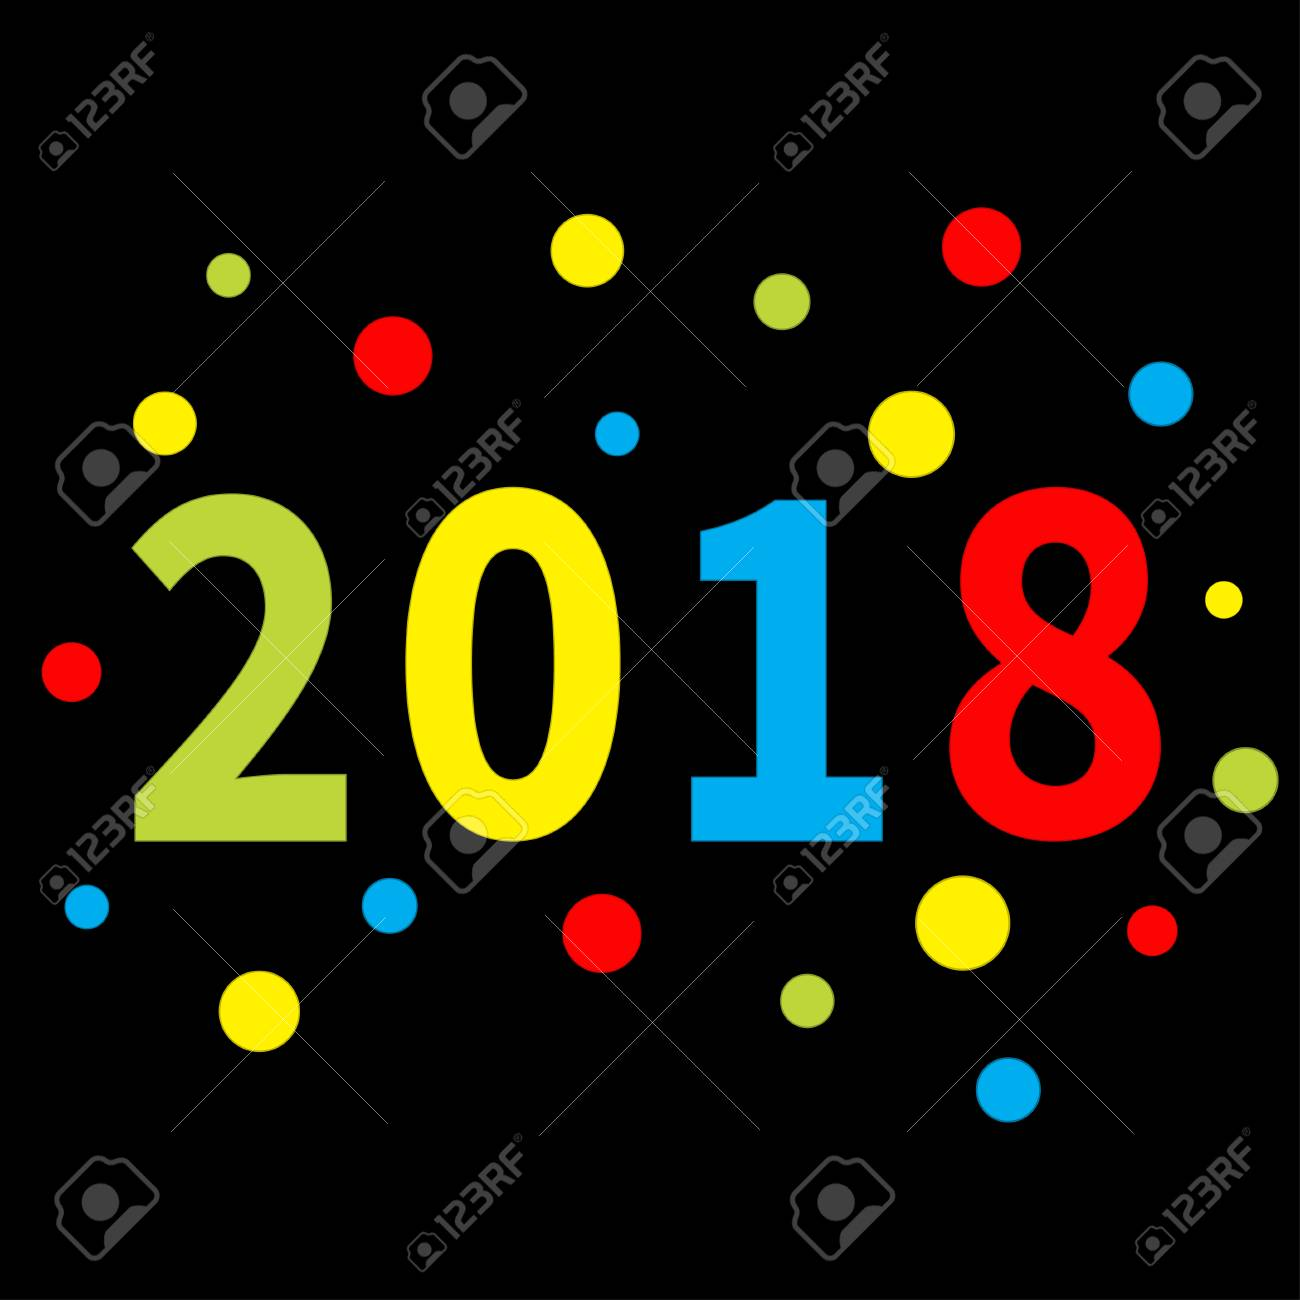 2018 new year colorful round dot template for greeting card calendar presentation